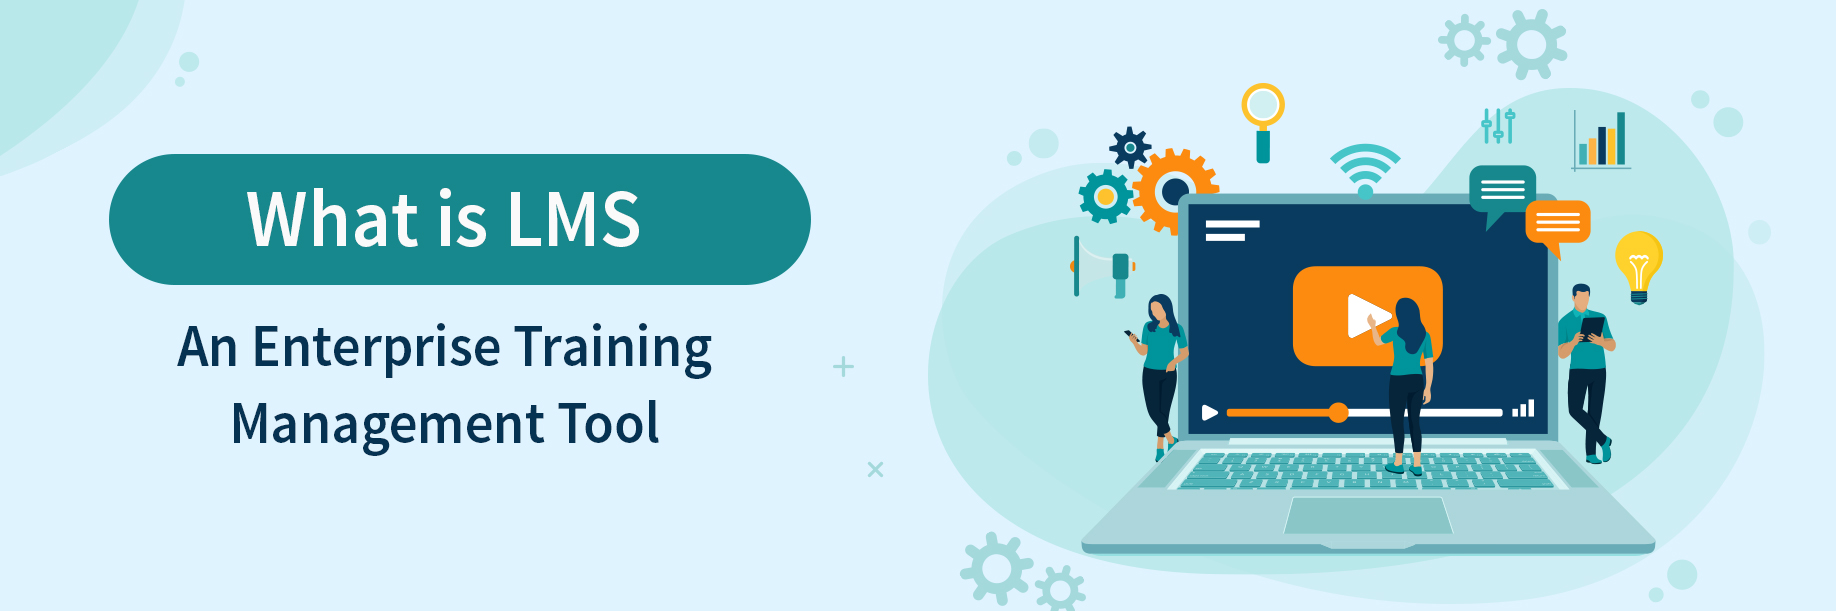 What is LMS: An Enterprise Training Management Tool